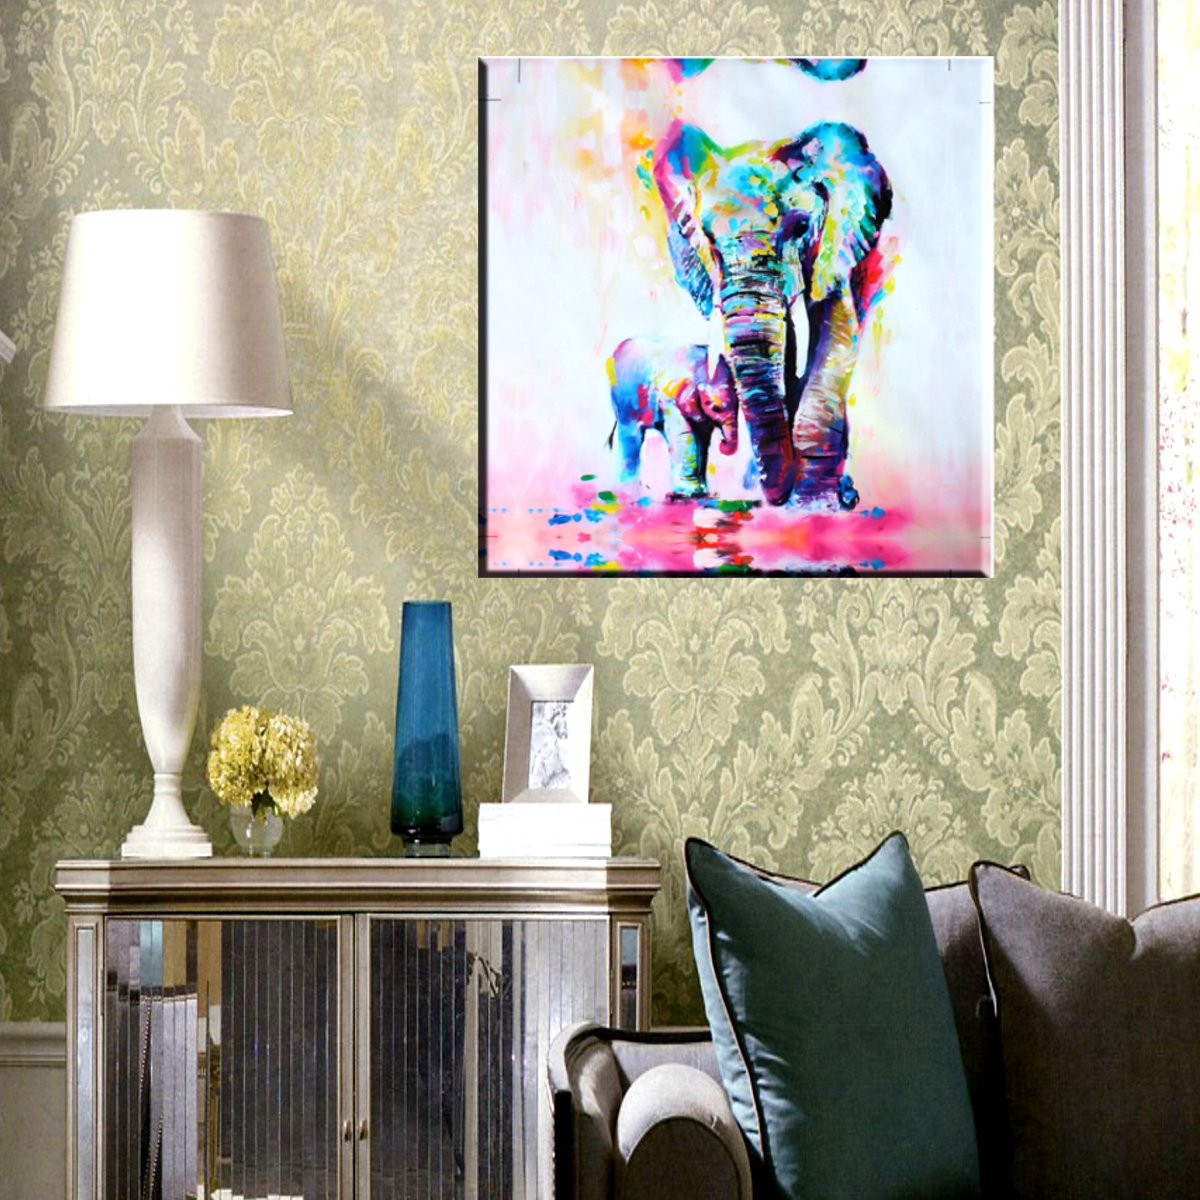 MOHOO Unframed Print Canvas Elephant Oil Painting Picture Office Home Bedroom Wall Art Decor Watercolor ,20×20 inch